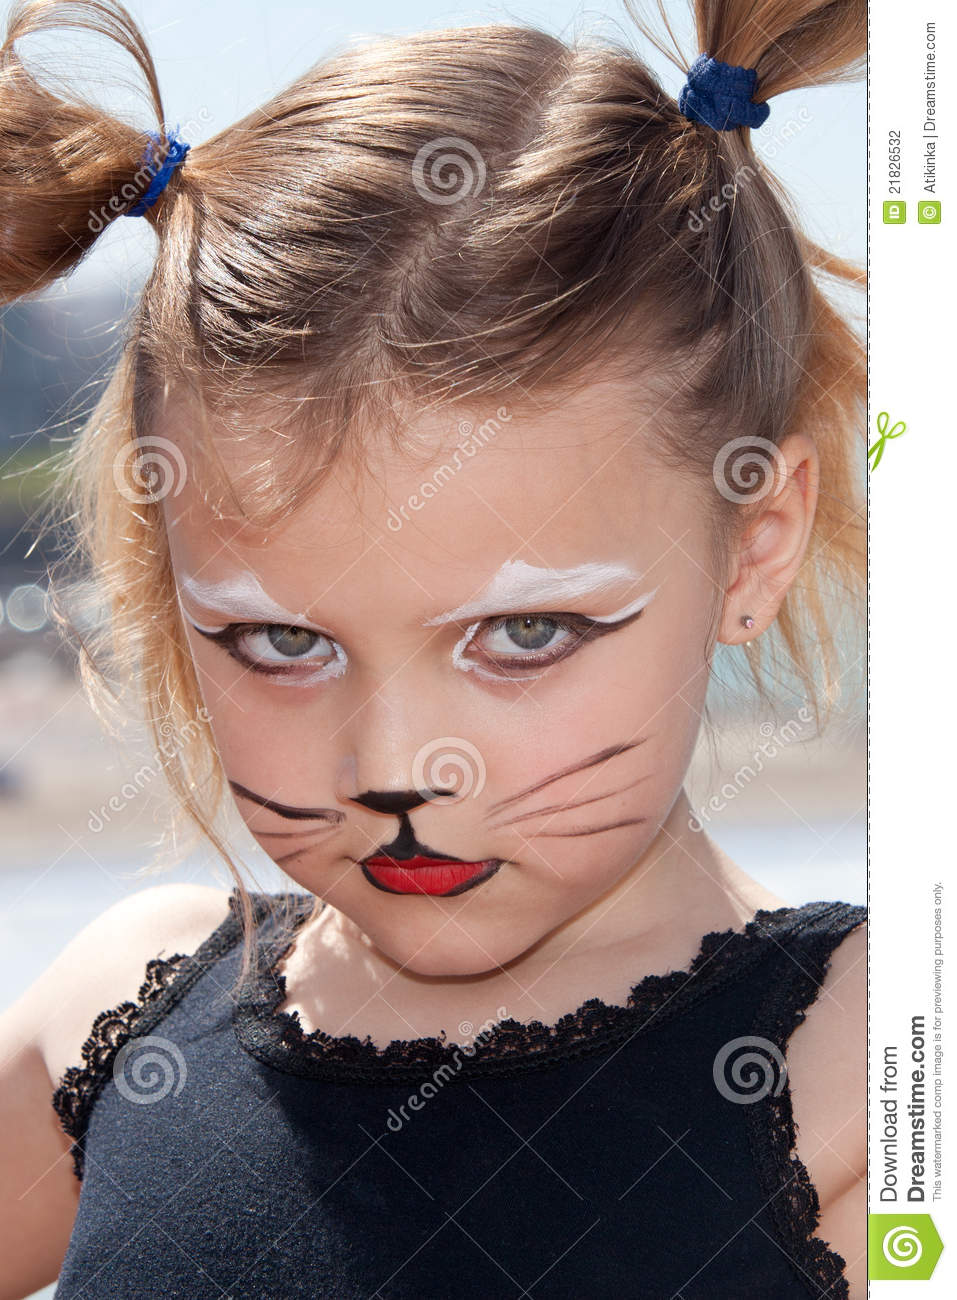 Child With Kitty Cat Make Up Stock Photography - Image: 21826532